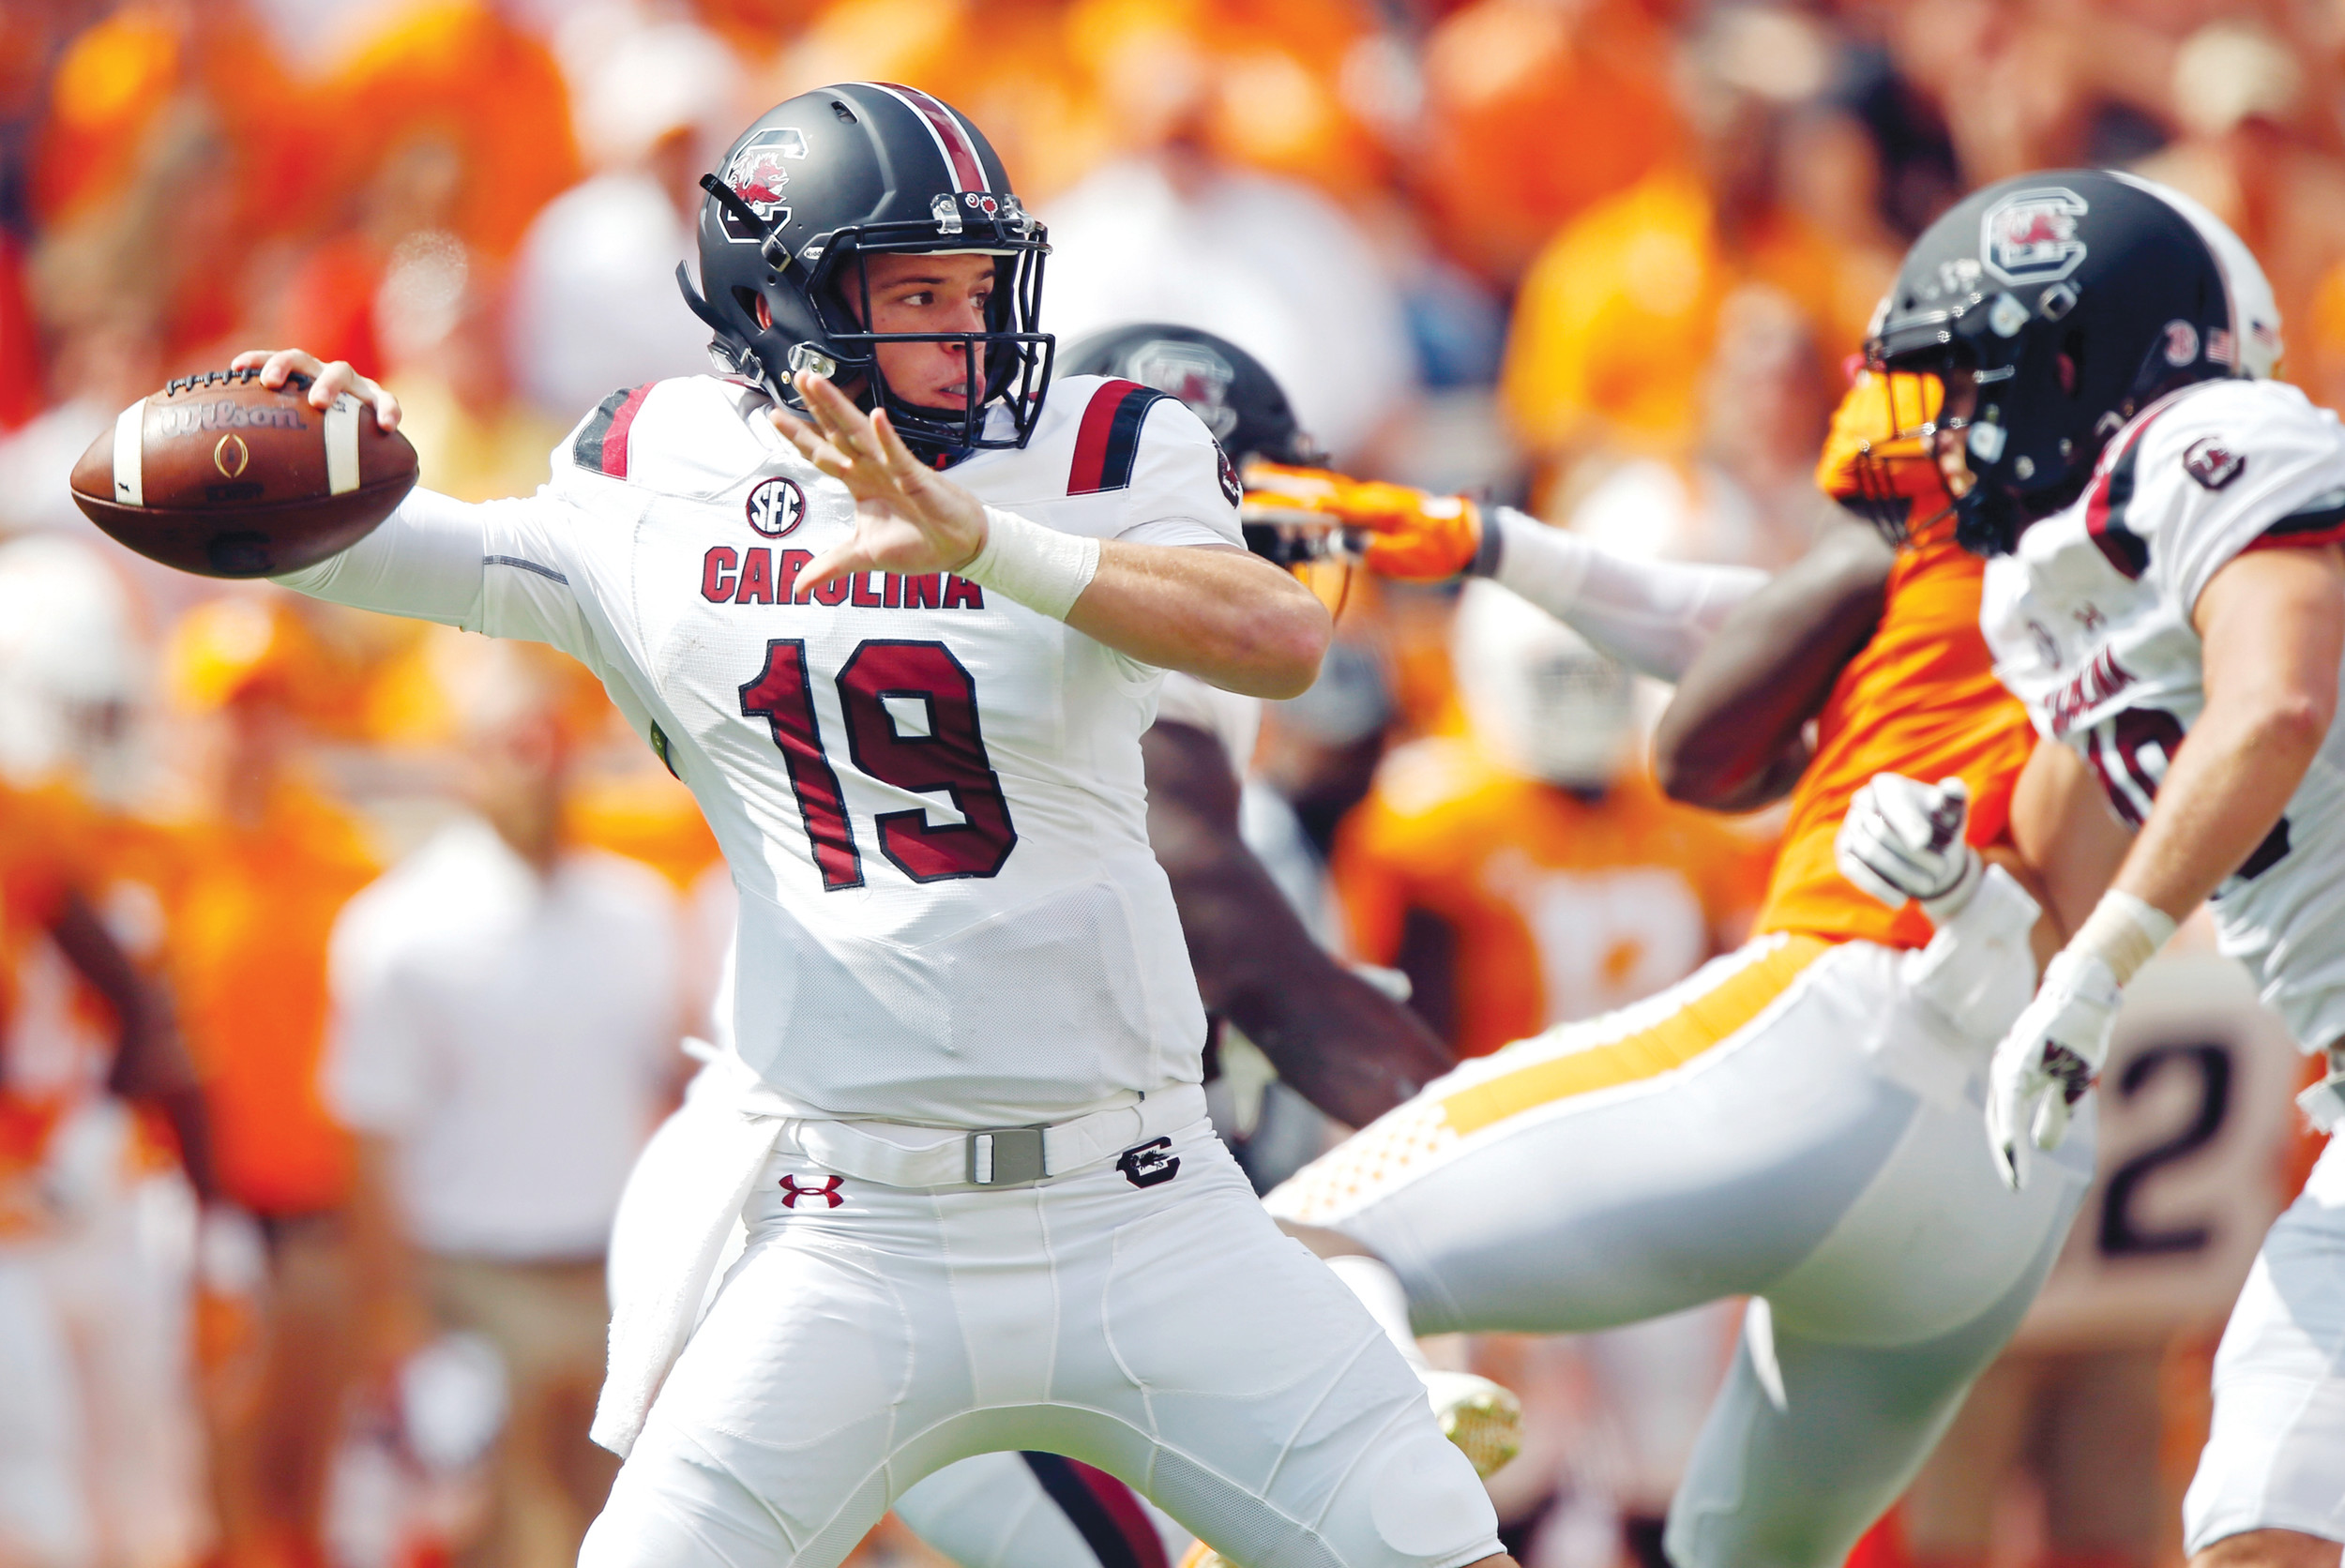 South Carolina quarterback Jake Bentley (19) throws a pass in the first half of the Gamecocks' 15-9 victory over Tennessee in Knoxville, Tennessee. South Carolina figured to be a work in progress in coach Will Muschamp's second season. But headed into their break, the Gamecocks are among the Southeastern Conference's biggest surprises at 5-2 and have their sights set on even bigger things the rest of the way.  (AP Photo/Wade Payne, File)